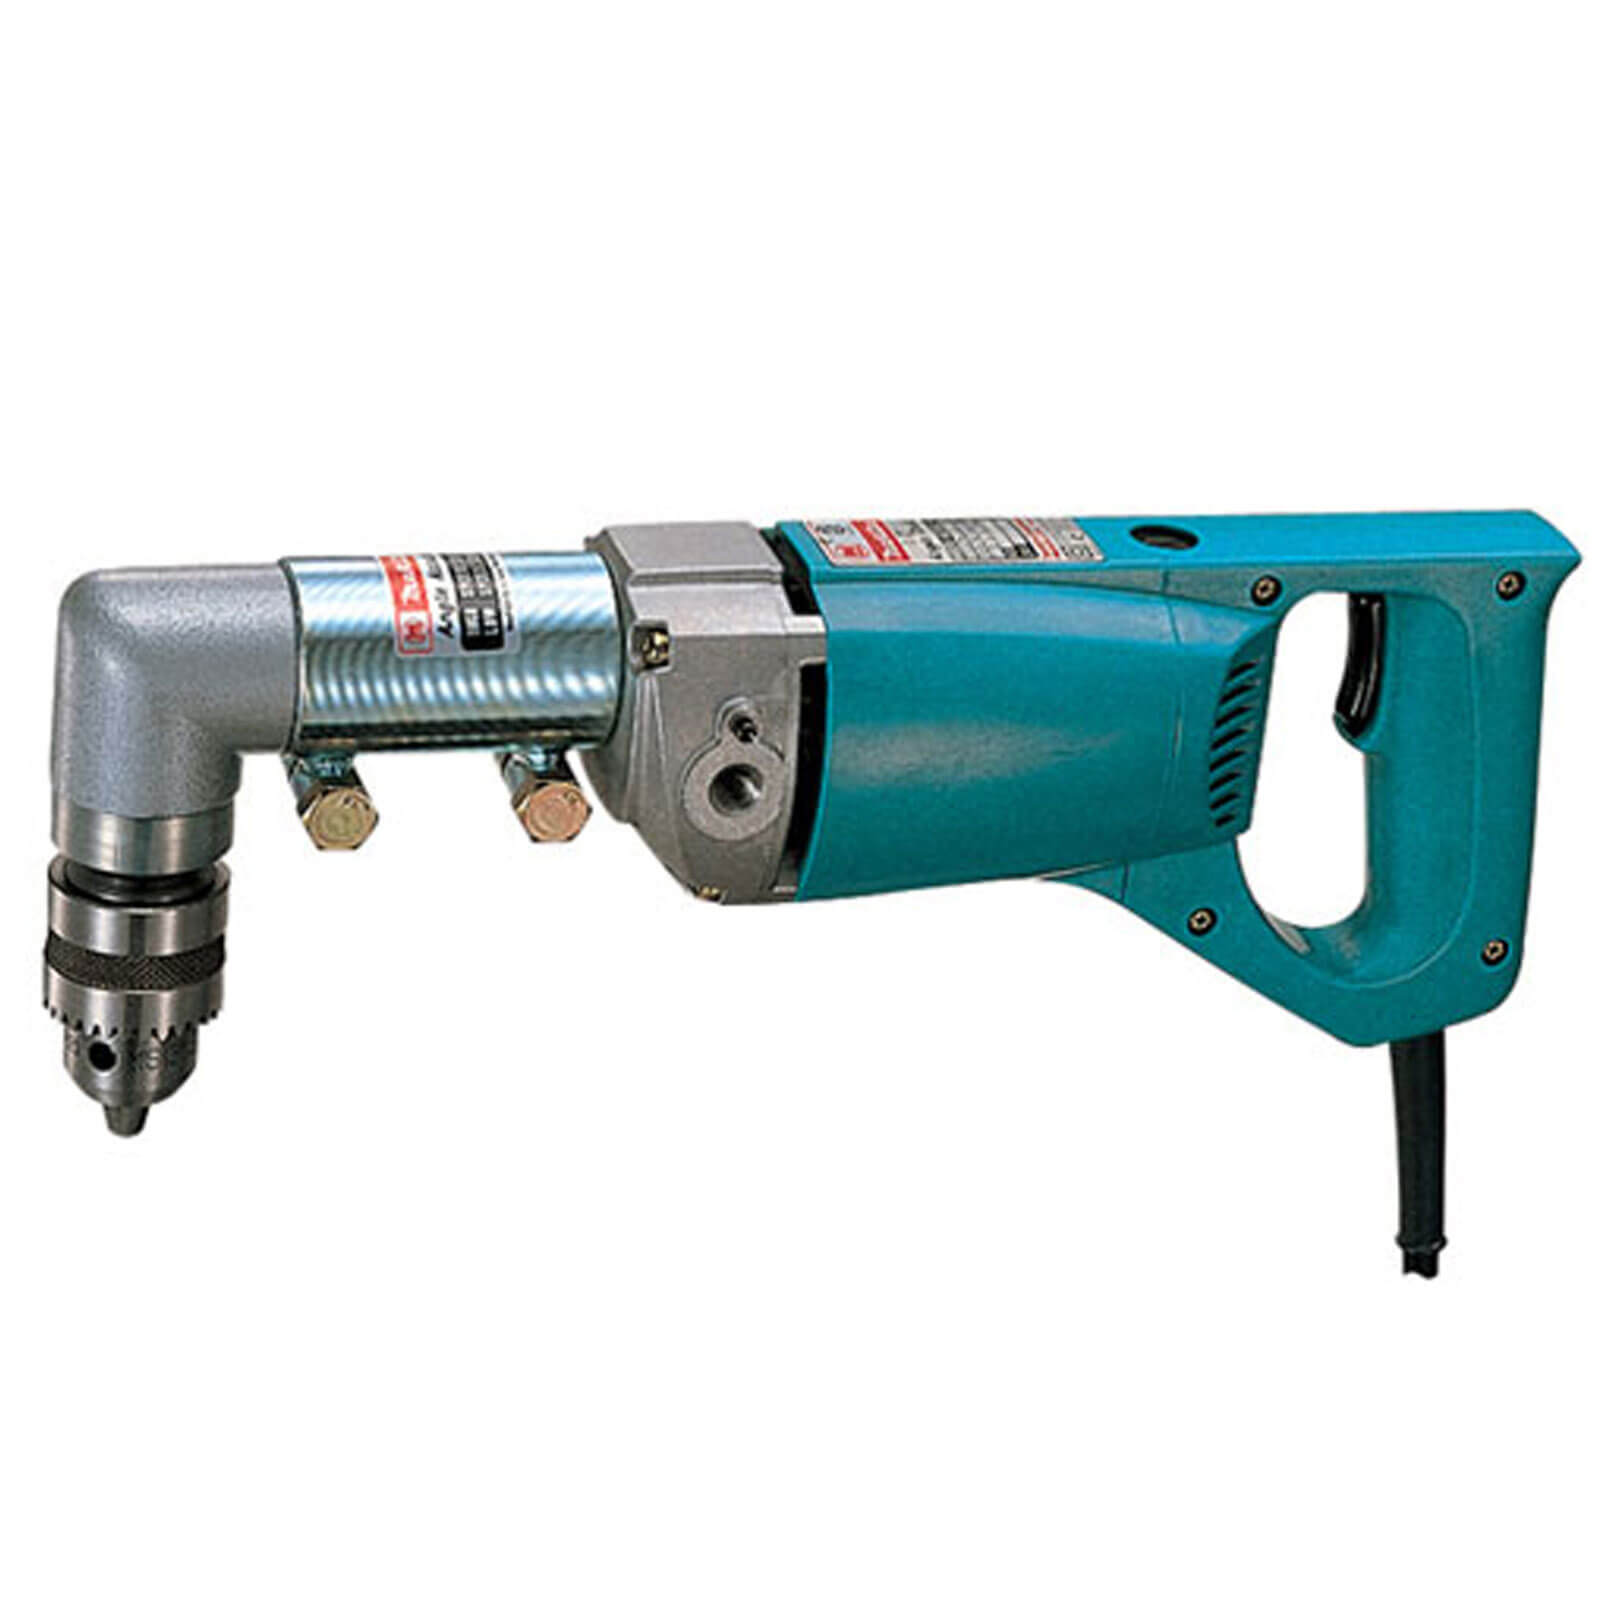 Makita 6300LR Rotary Right Angle Drill 550w 240v